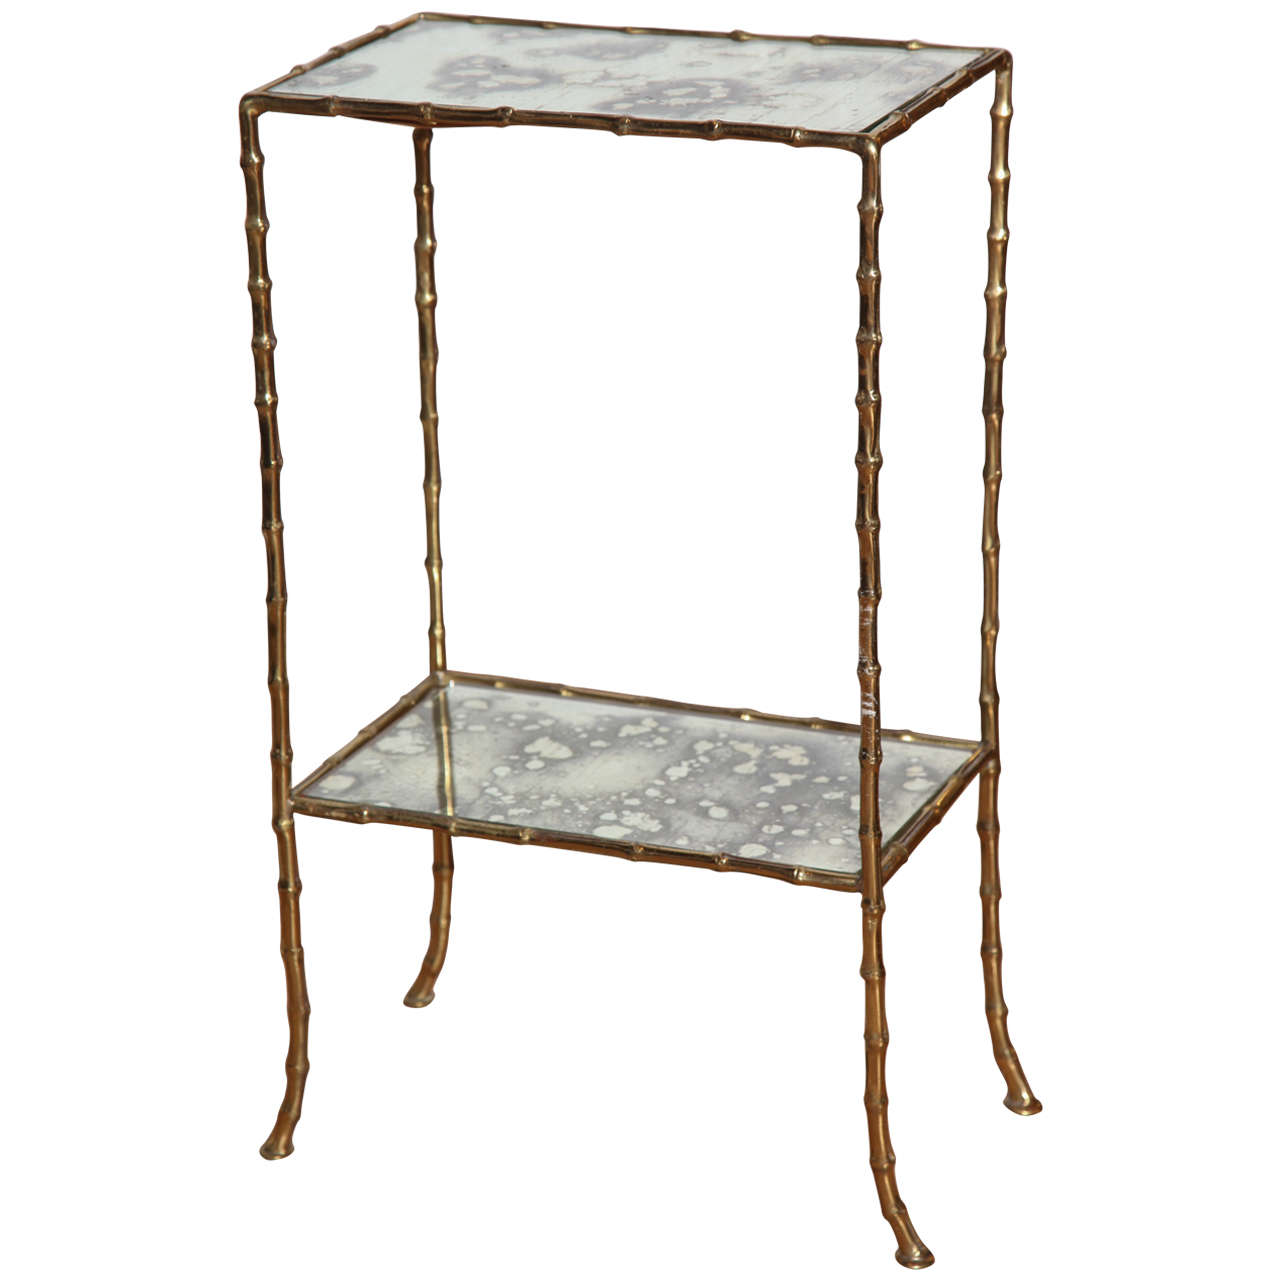 A gilt brass and antiqued mirror faux bamboo etagere table for Miroir etagere